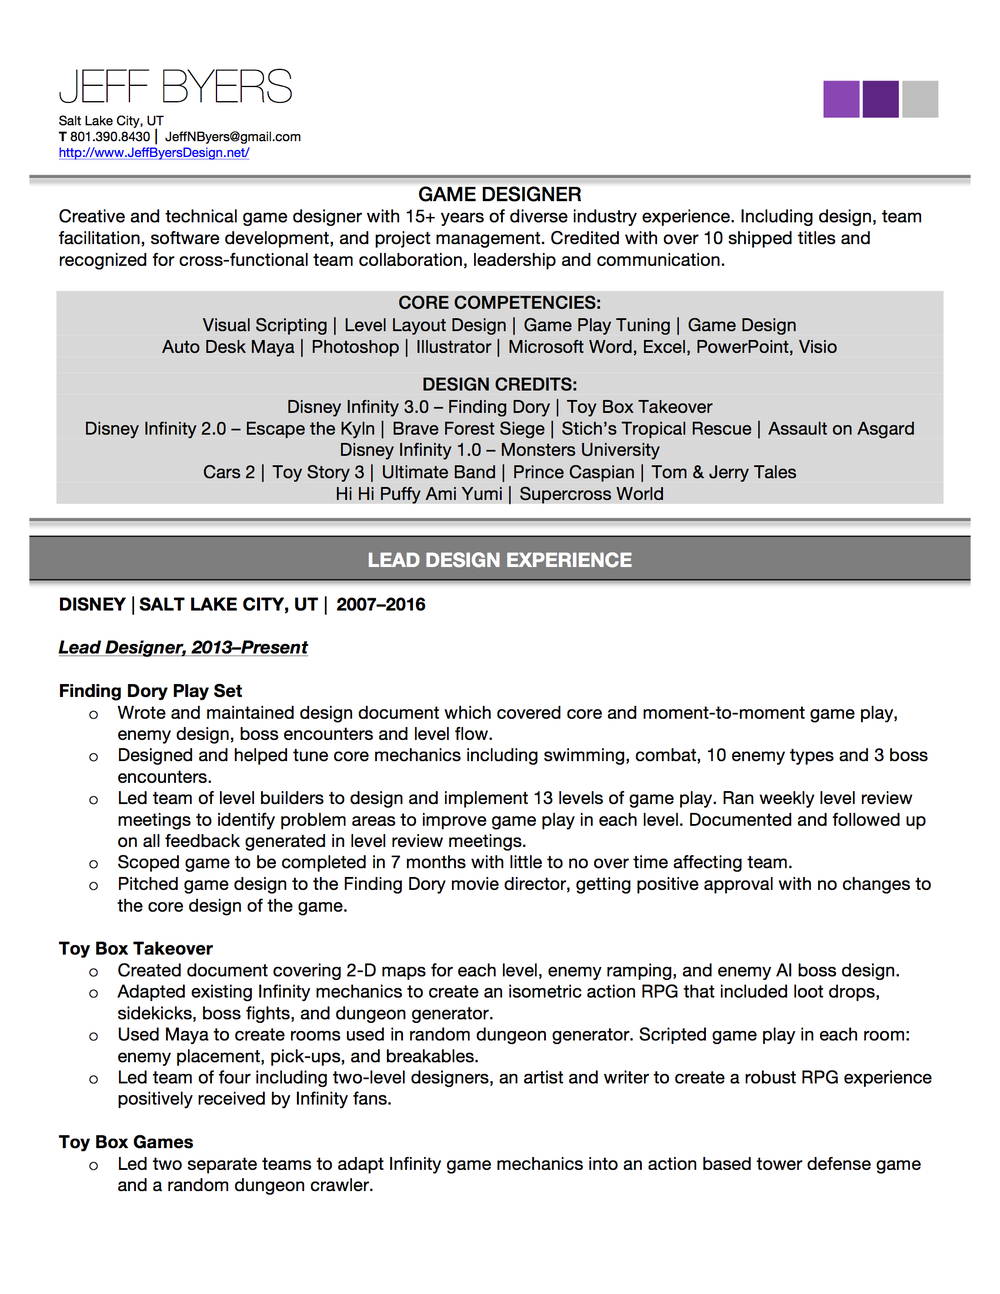 Jeffbyers_resume_p1   Game Designer Resume Regard To Game Design Resume